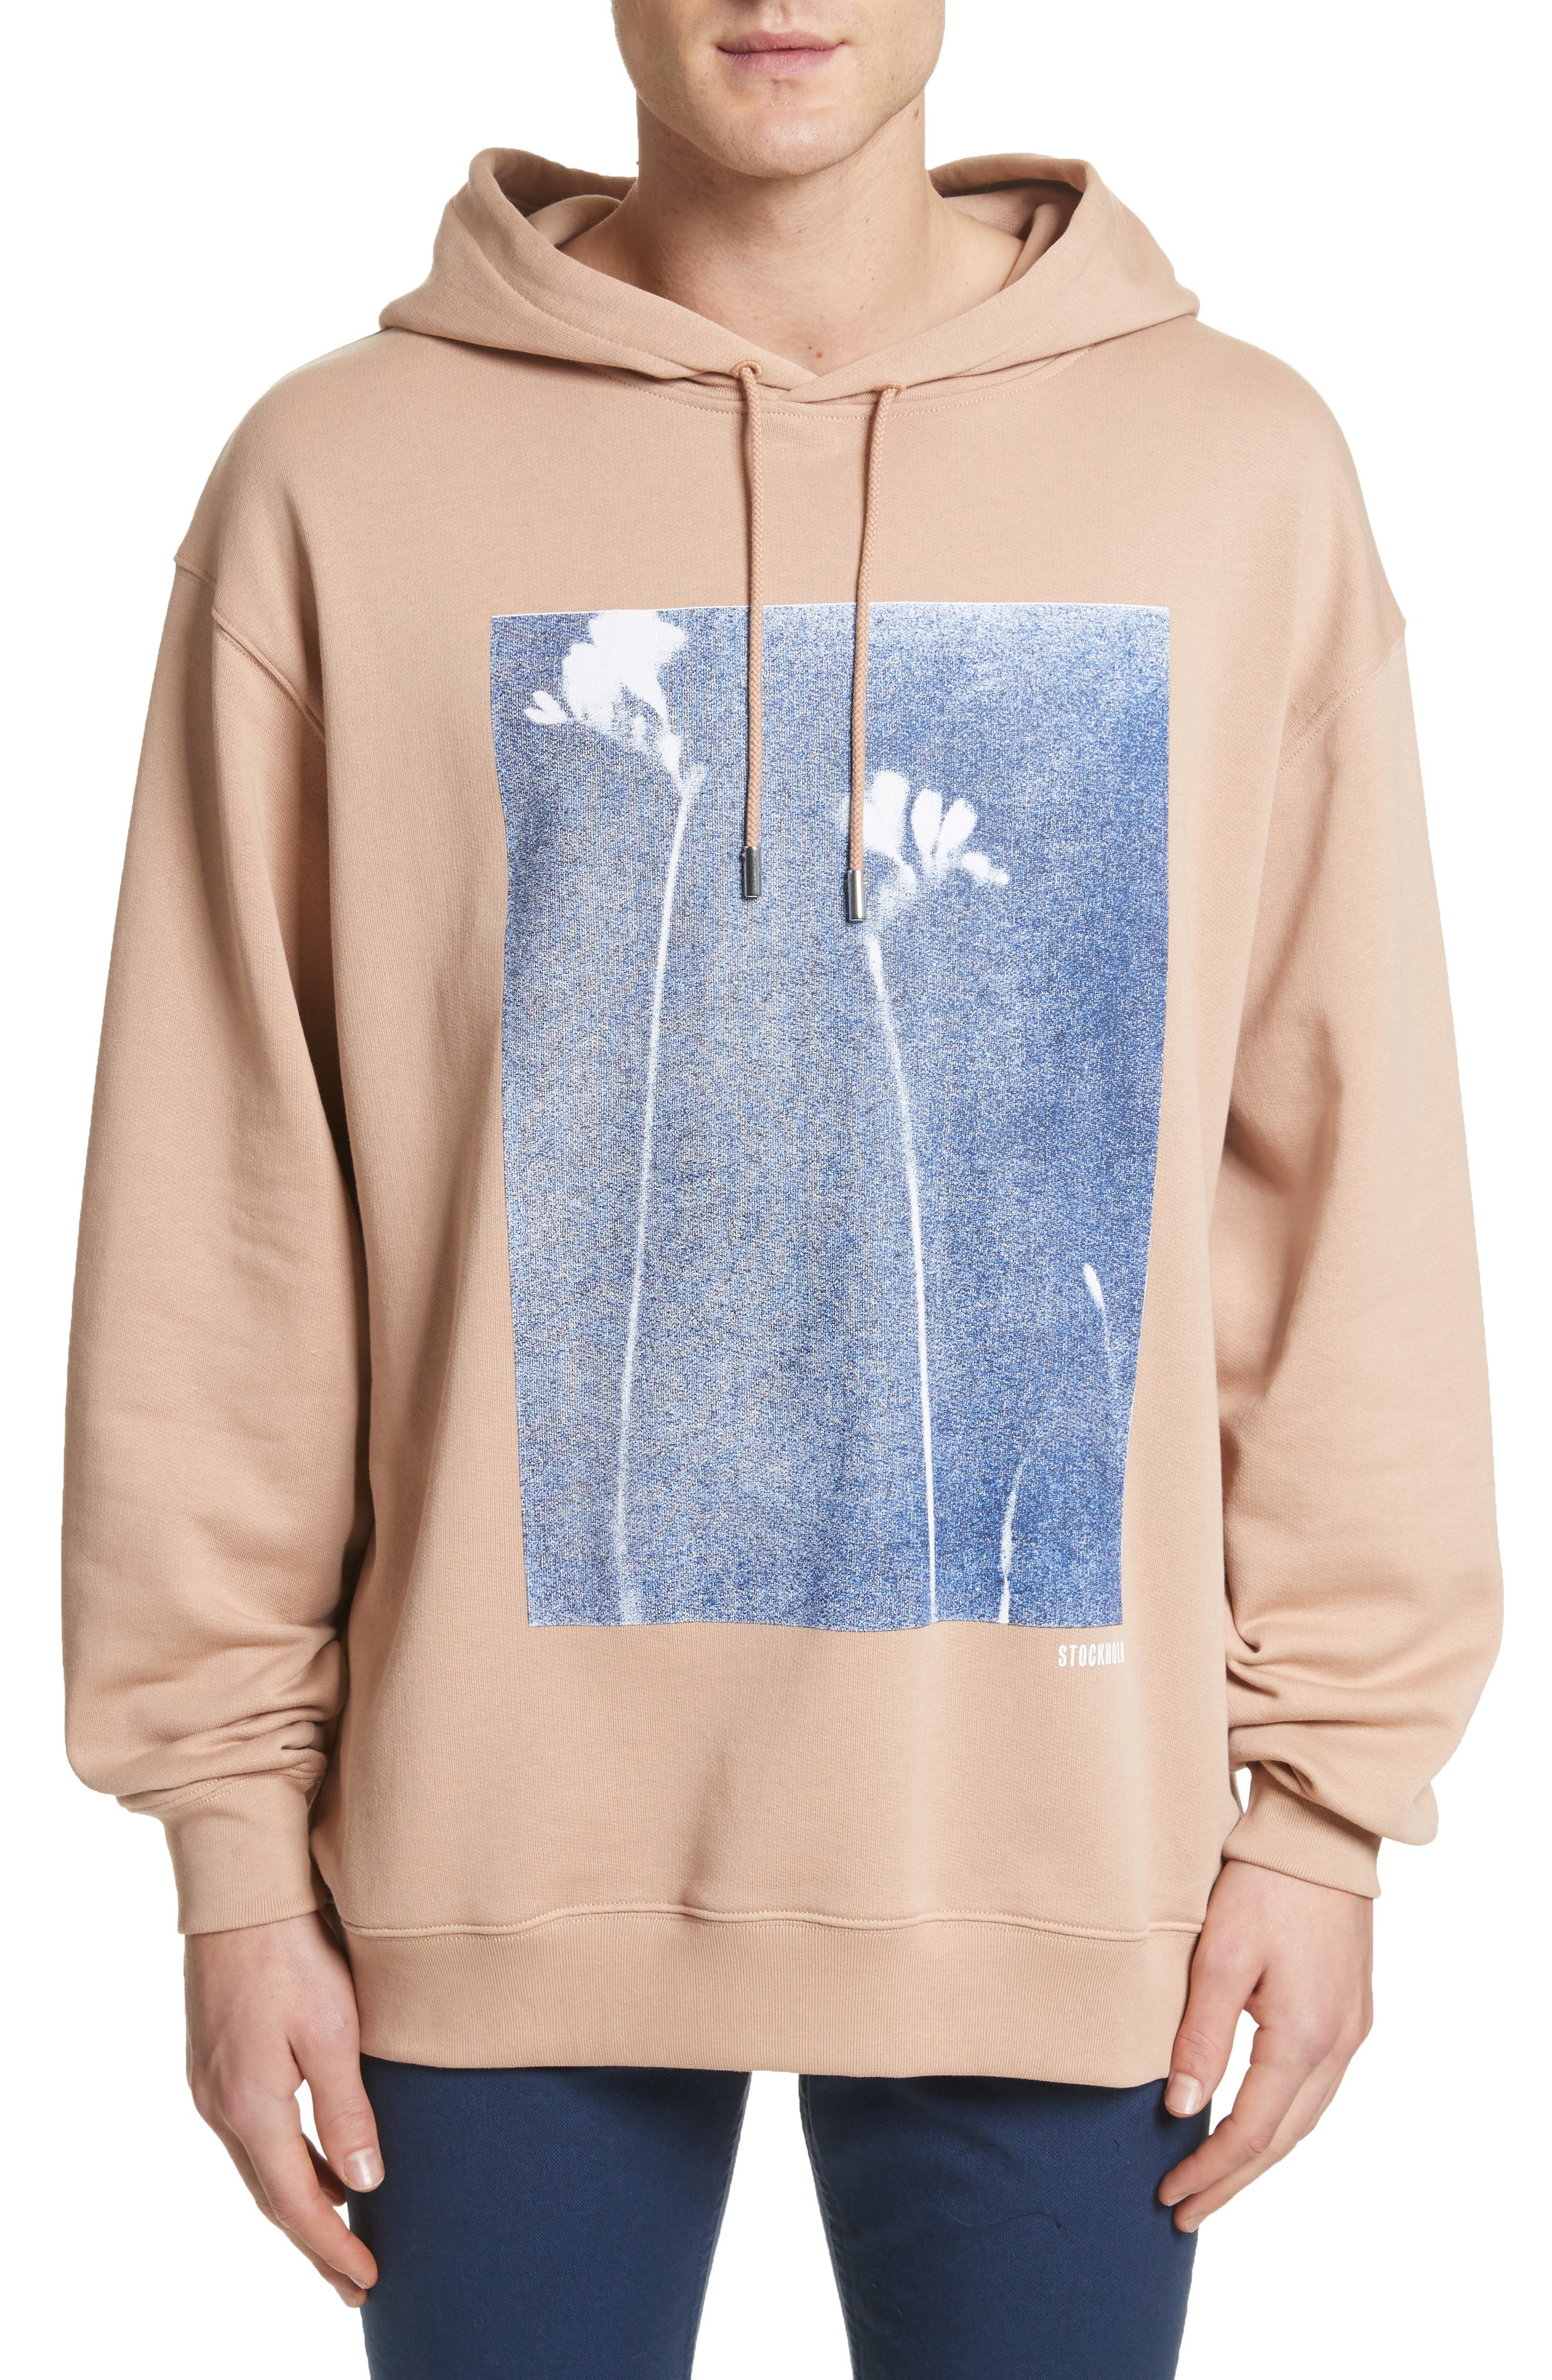 Fala Print Oversized Hoodie,                         Main,                         color, Beige